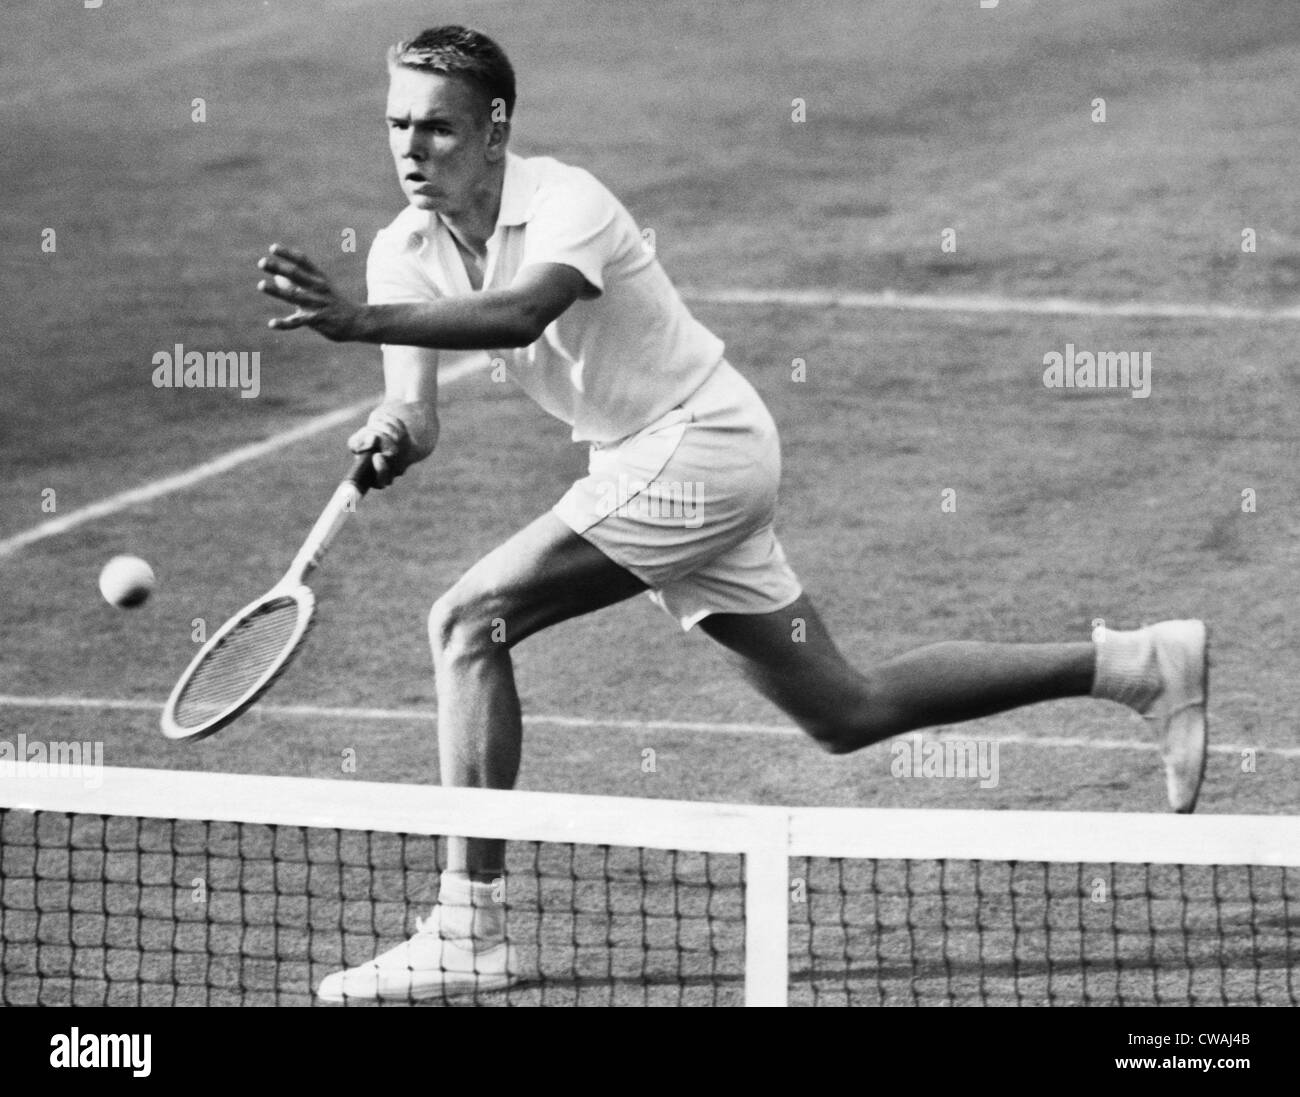 Tennis pro Jack Kramer c 1947 Courtesy CSU Archives Everett